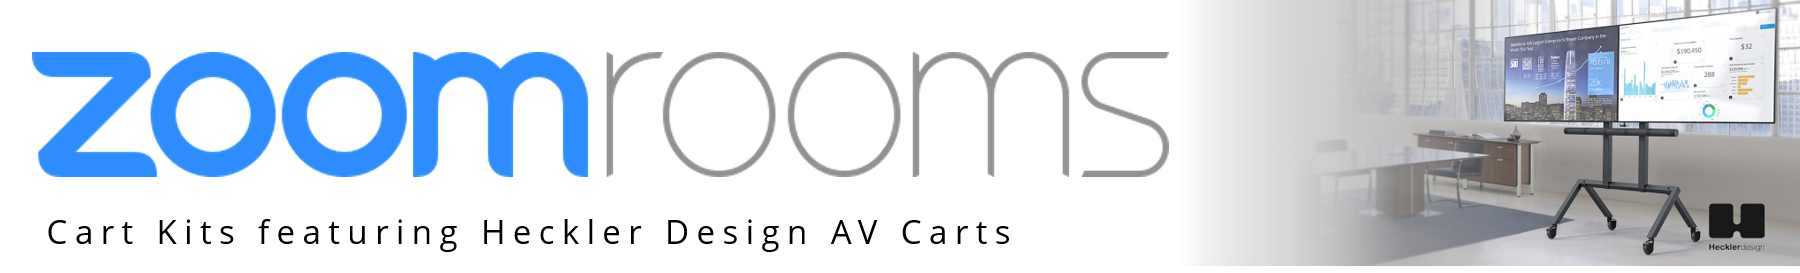 Zoom Rooms Cart Kits from VCGear.com